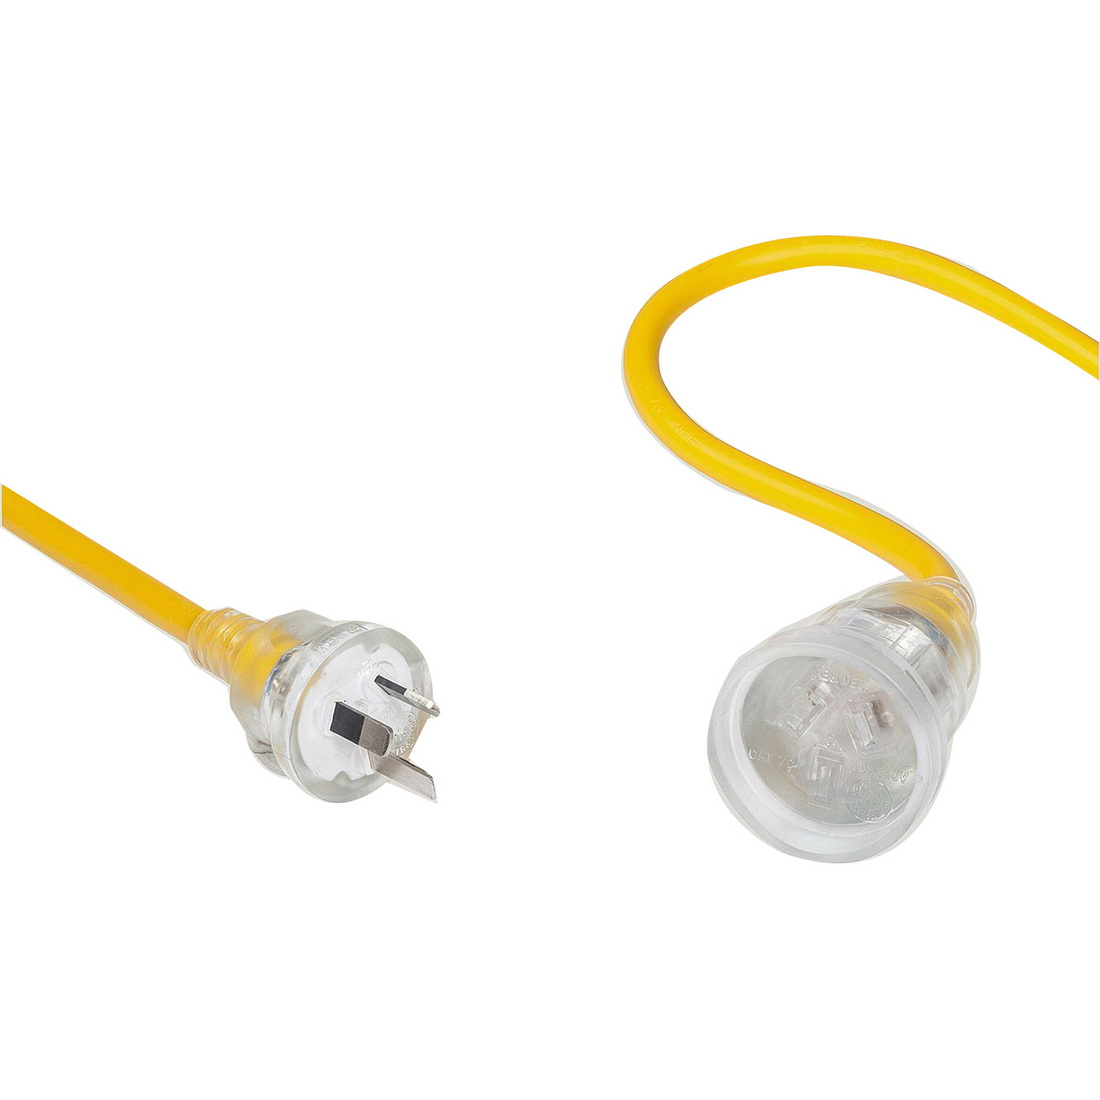 5m Heavy Duty Extension Lead with Clear Socket Yellow